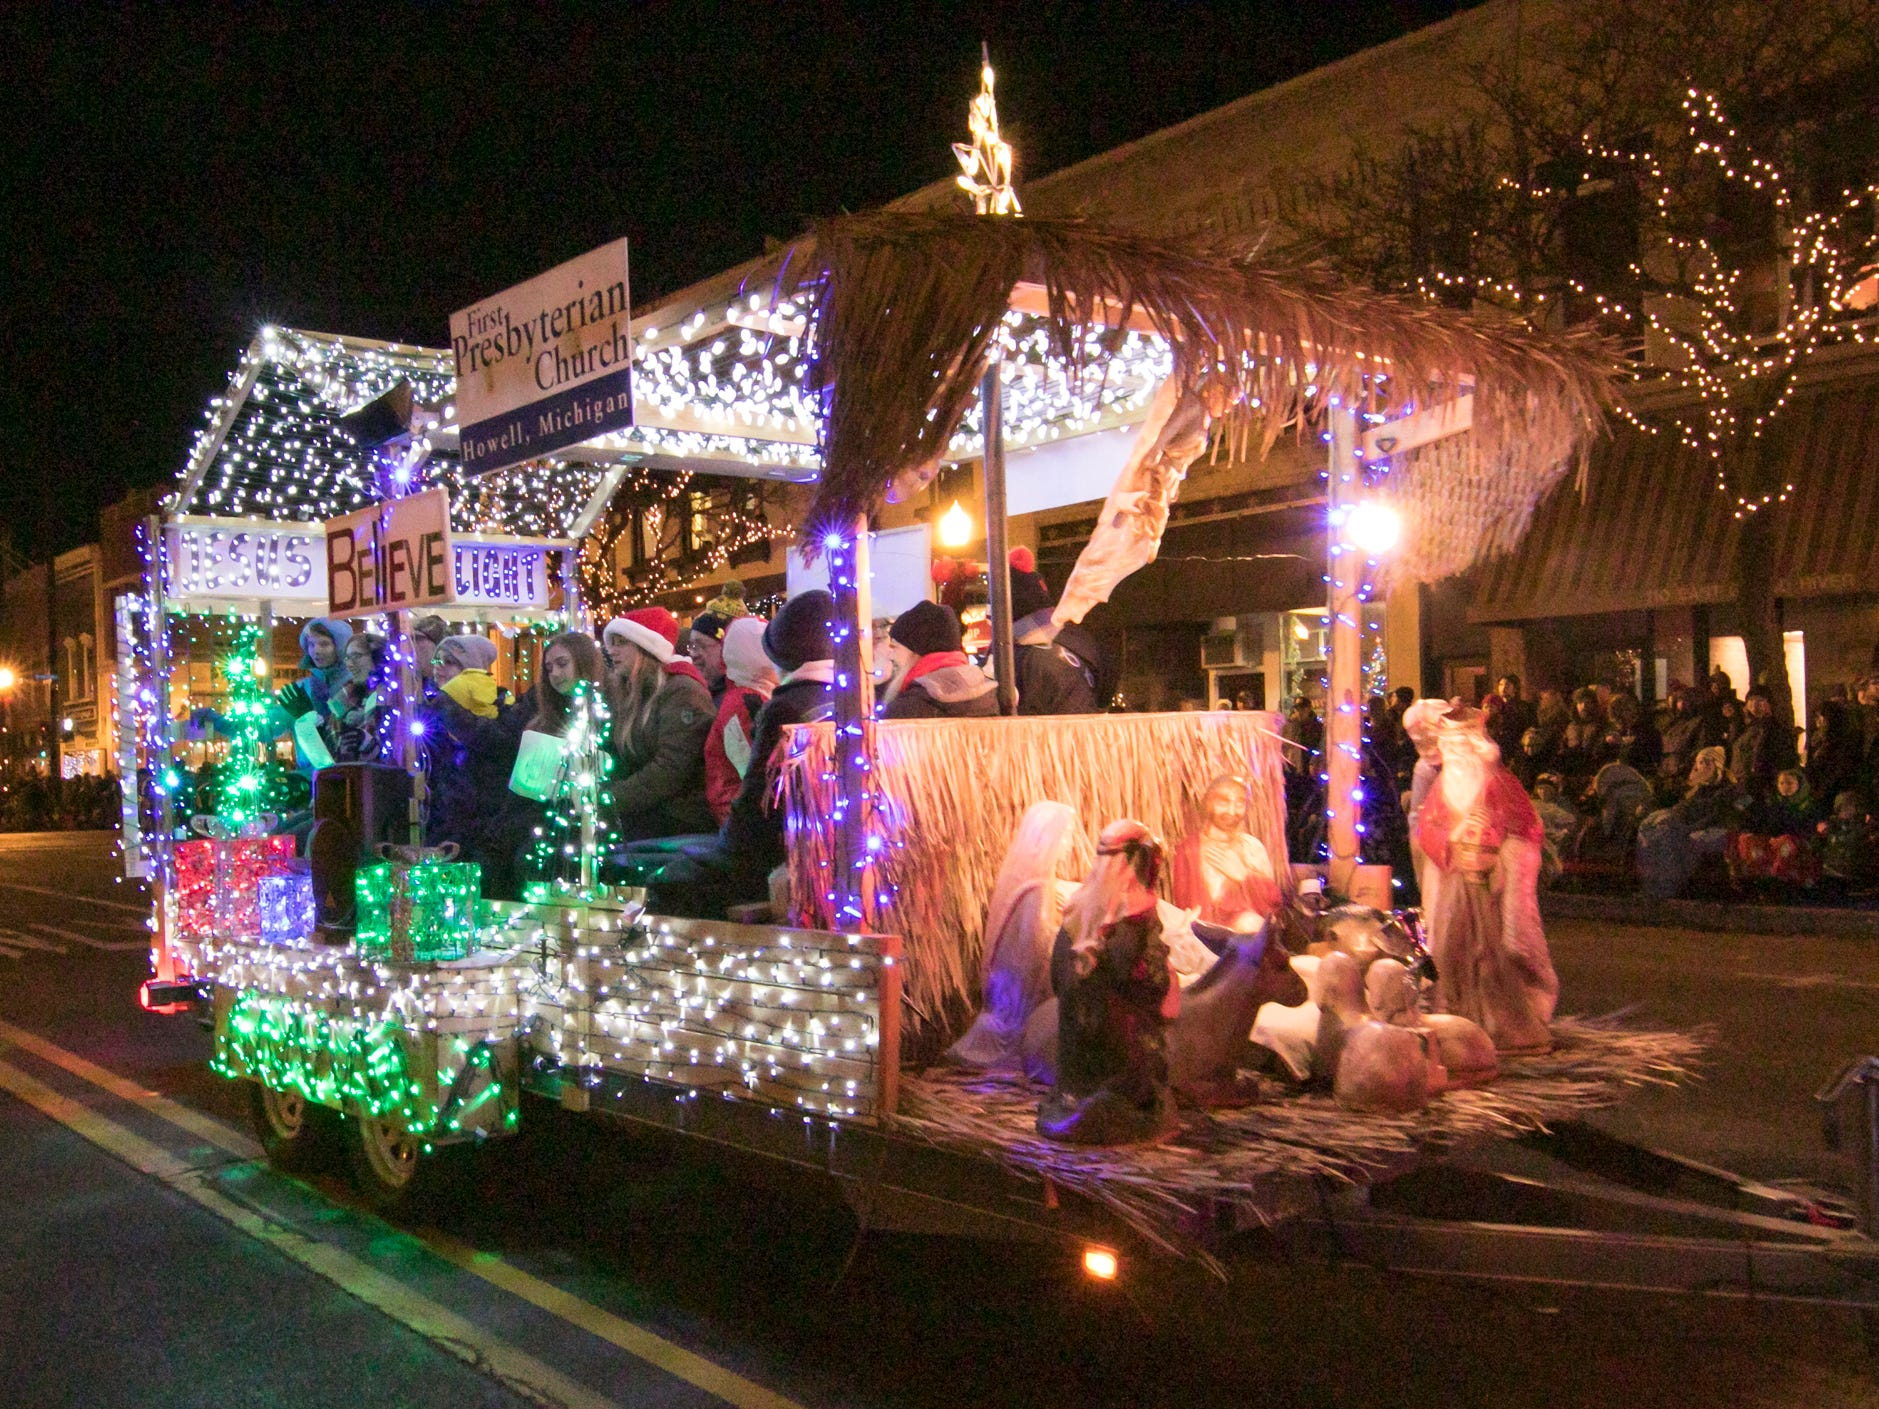 First Presbyterian Church's entry in the Fantasy of Lights parade rides down the parade route Friday, Nov. 23, 2018.